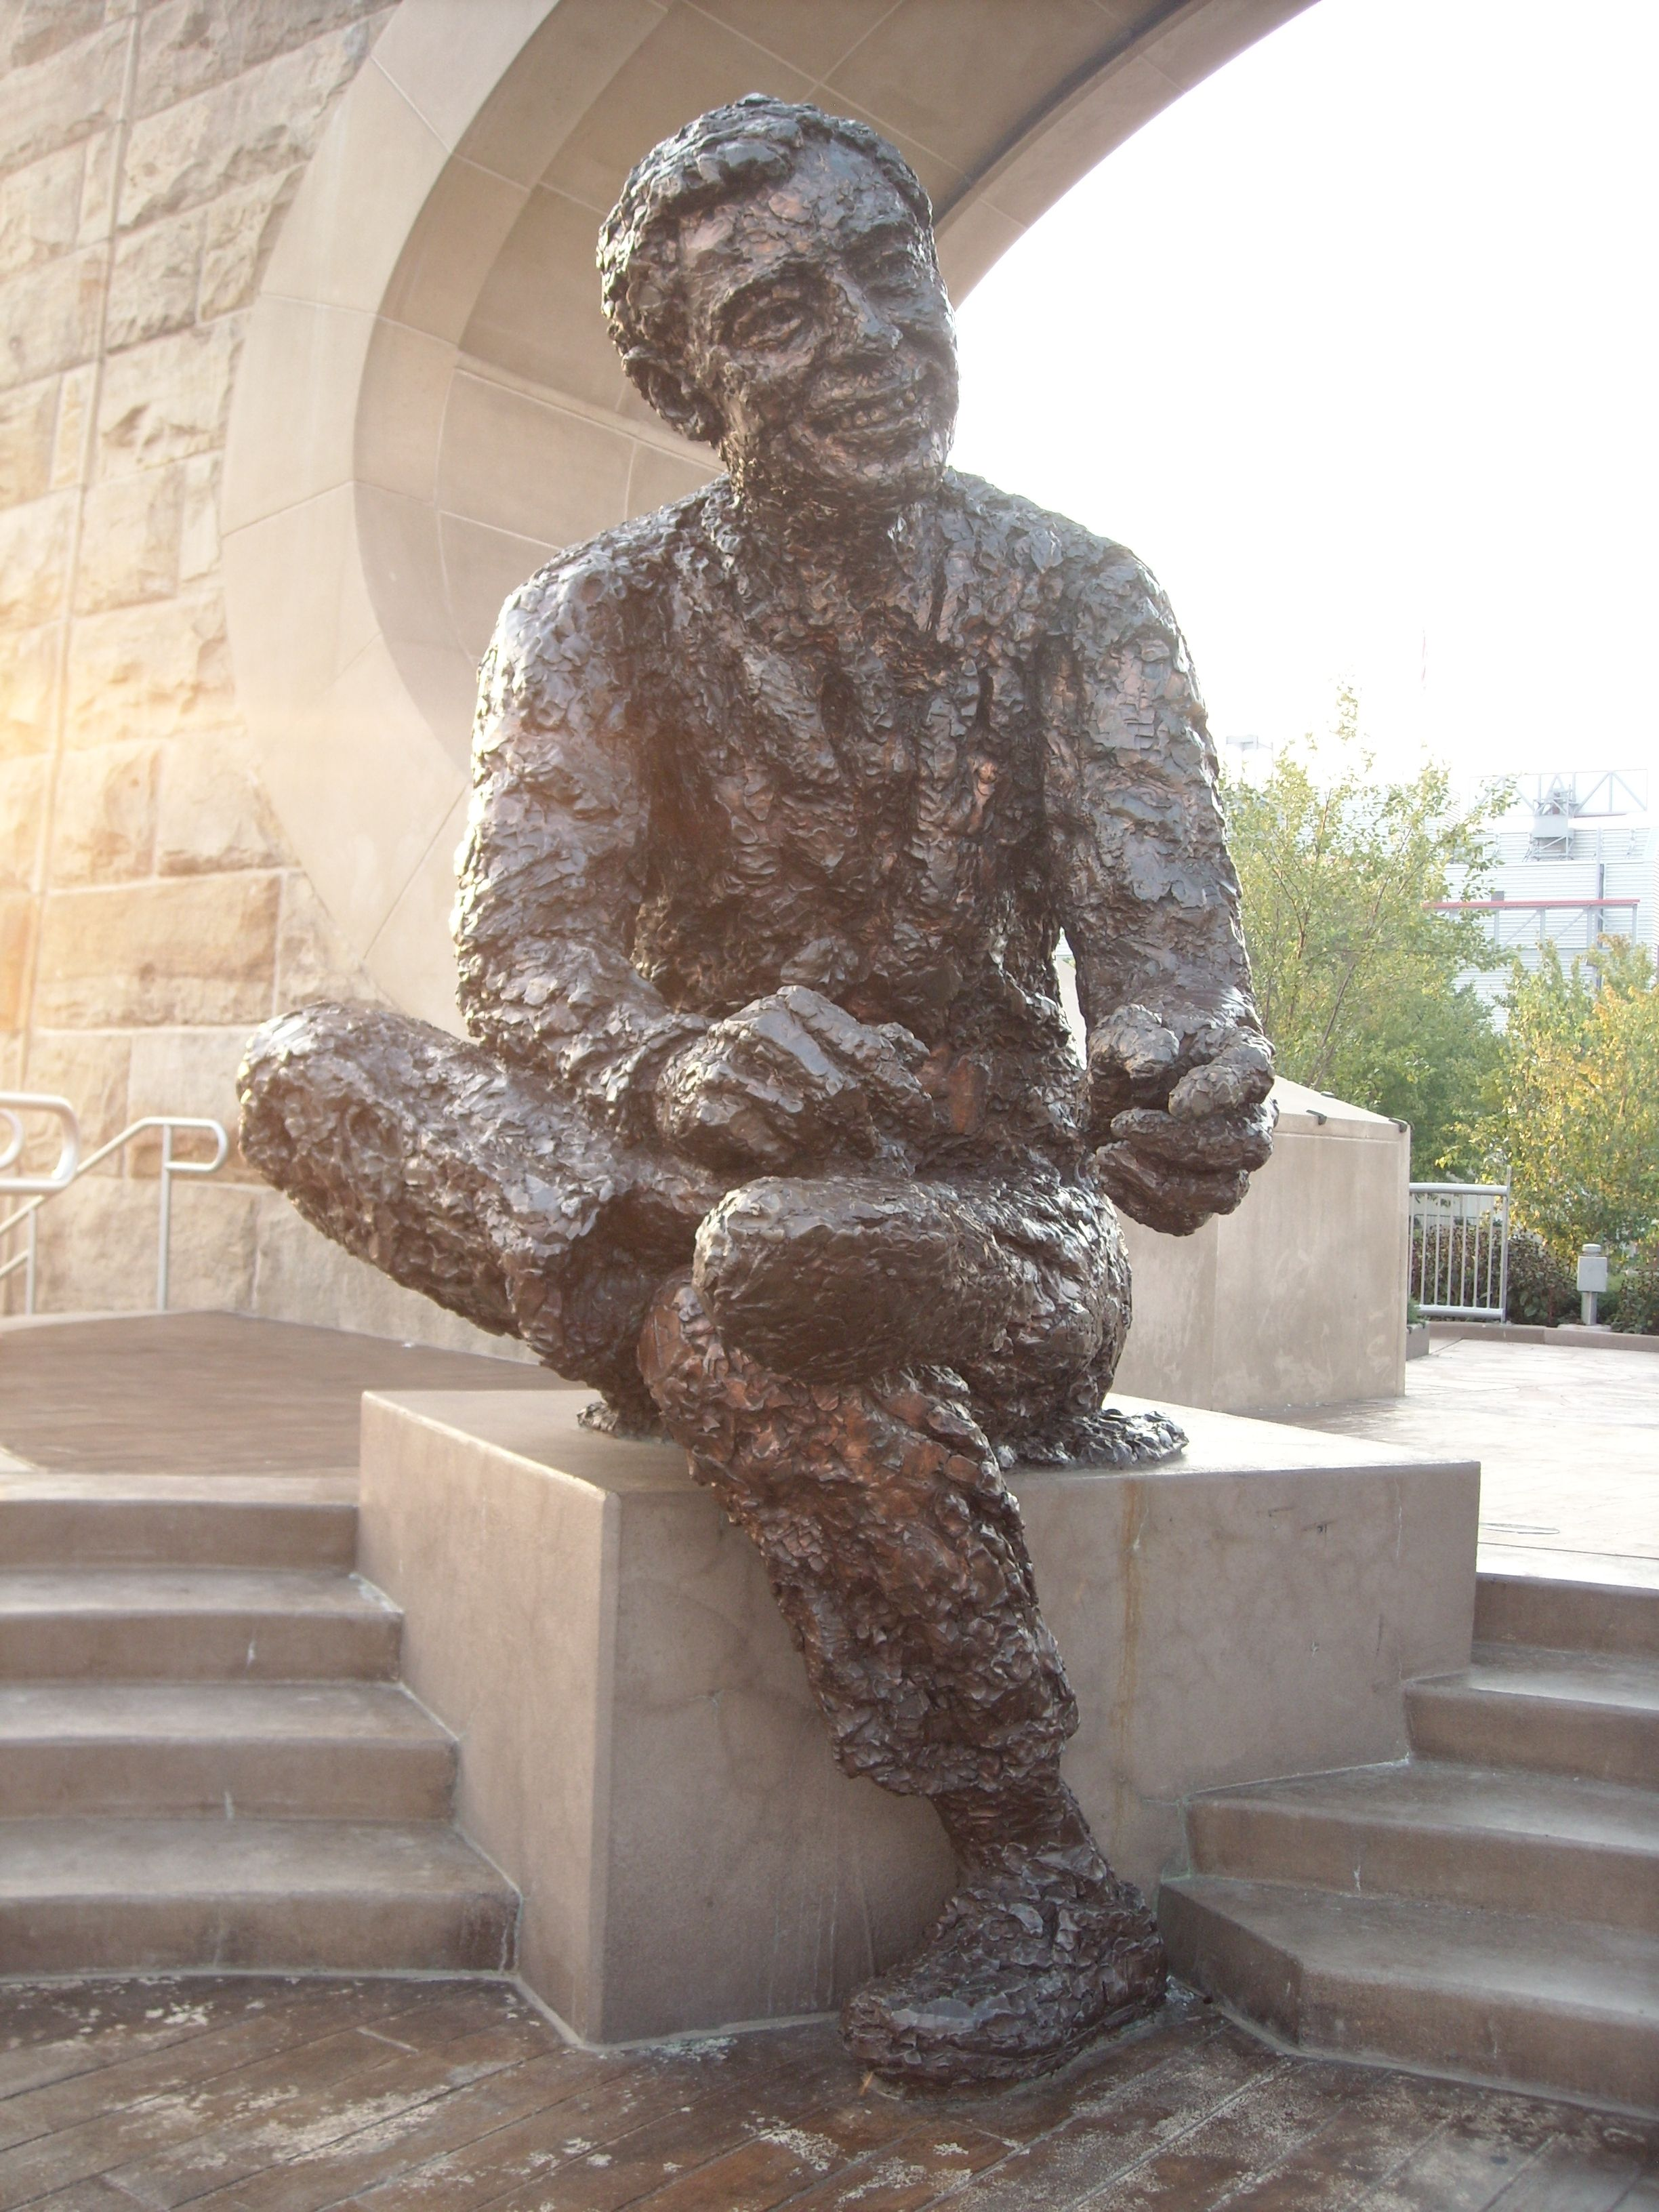 Mr Rogers Statue At The Point Going This Week Memorial Statues Garden Art Sculptures Mister Rogers Neighborhood